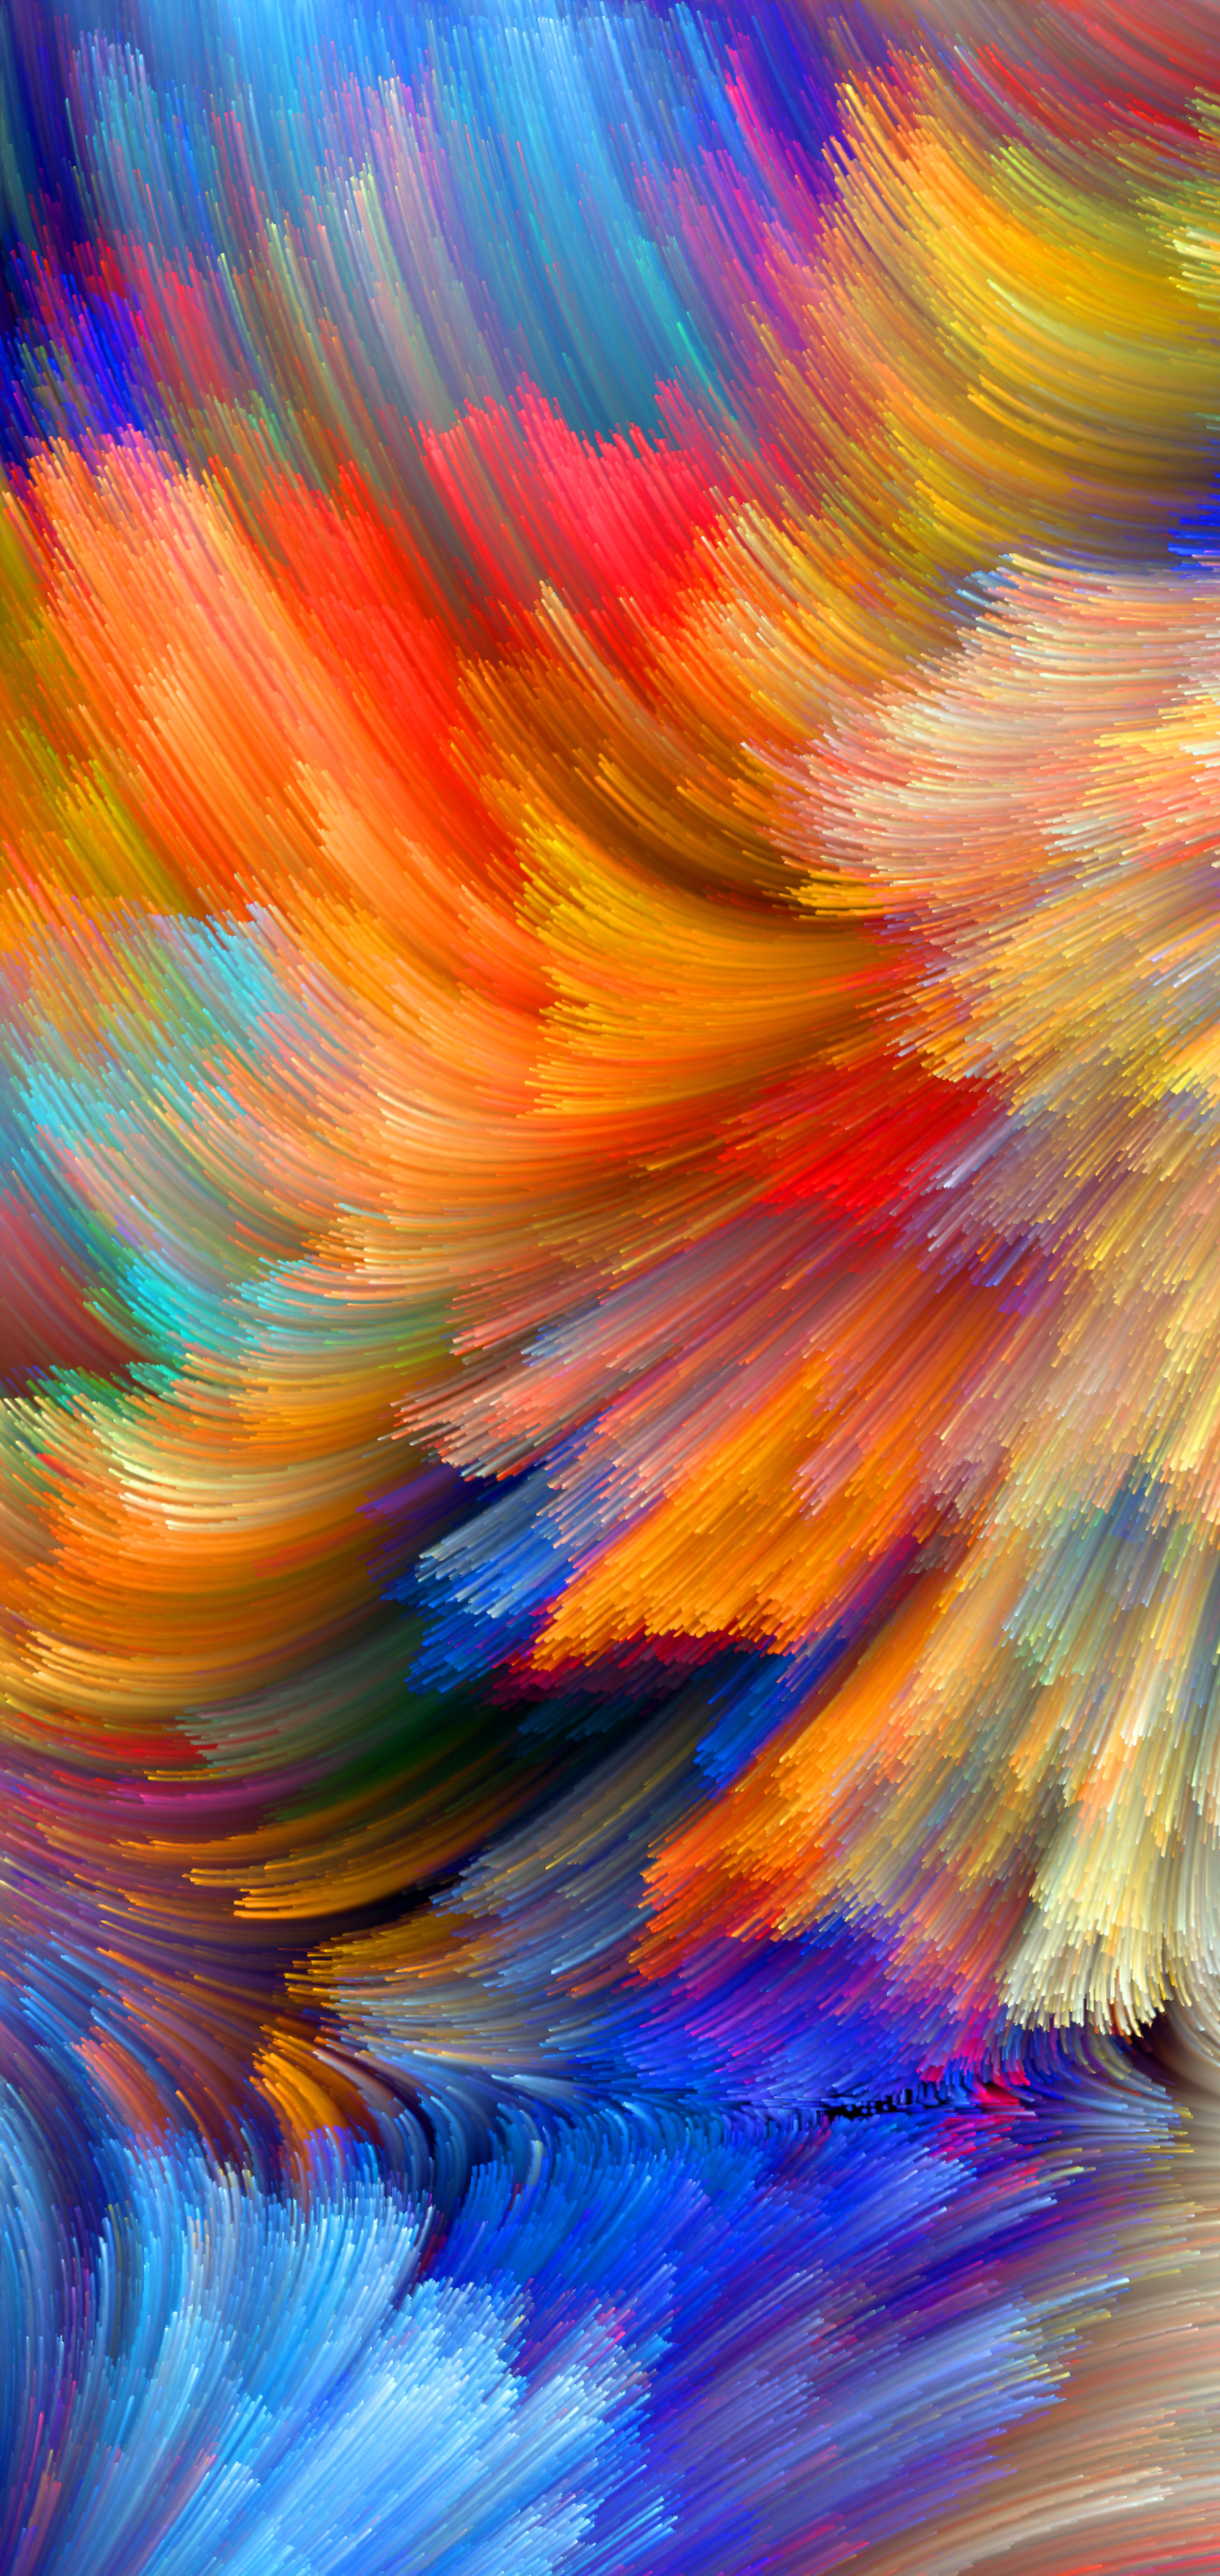 Abstractcolors 1440x3040 Wallpaper Id 814838 Mobile Abyss